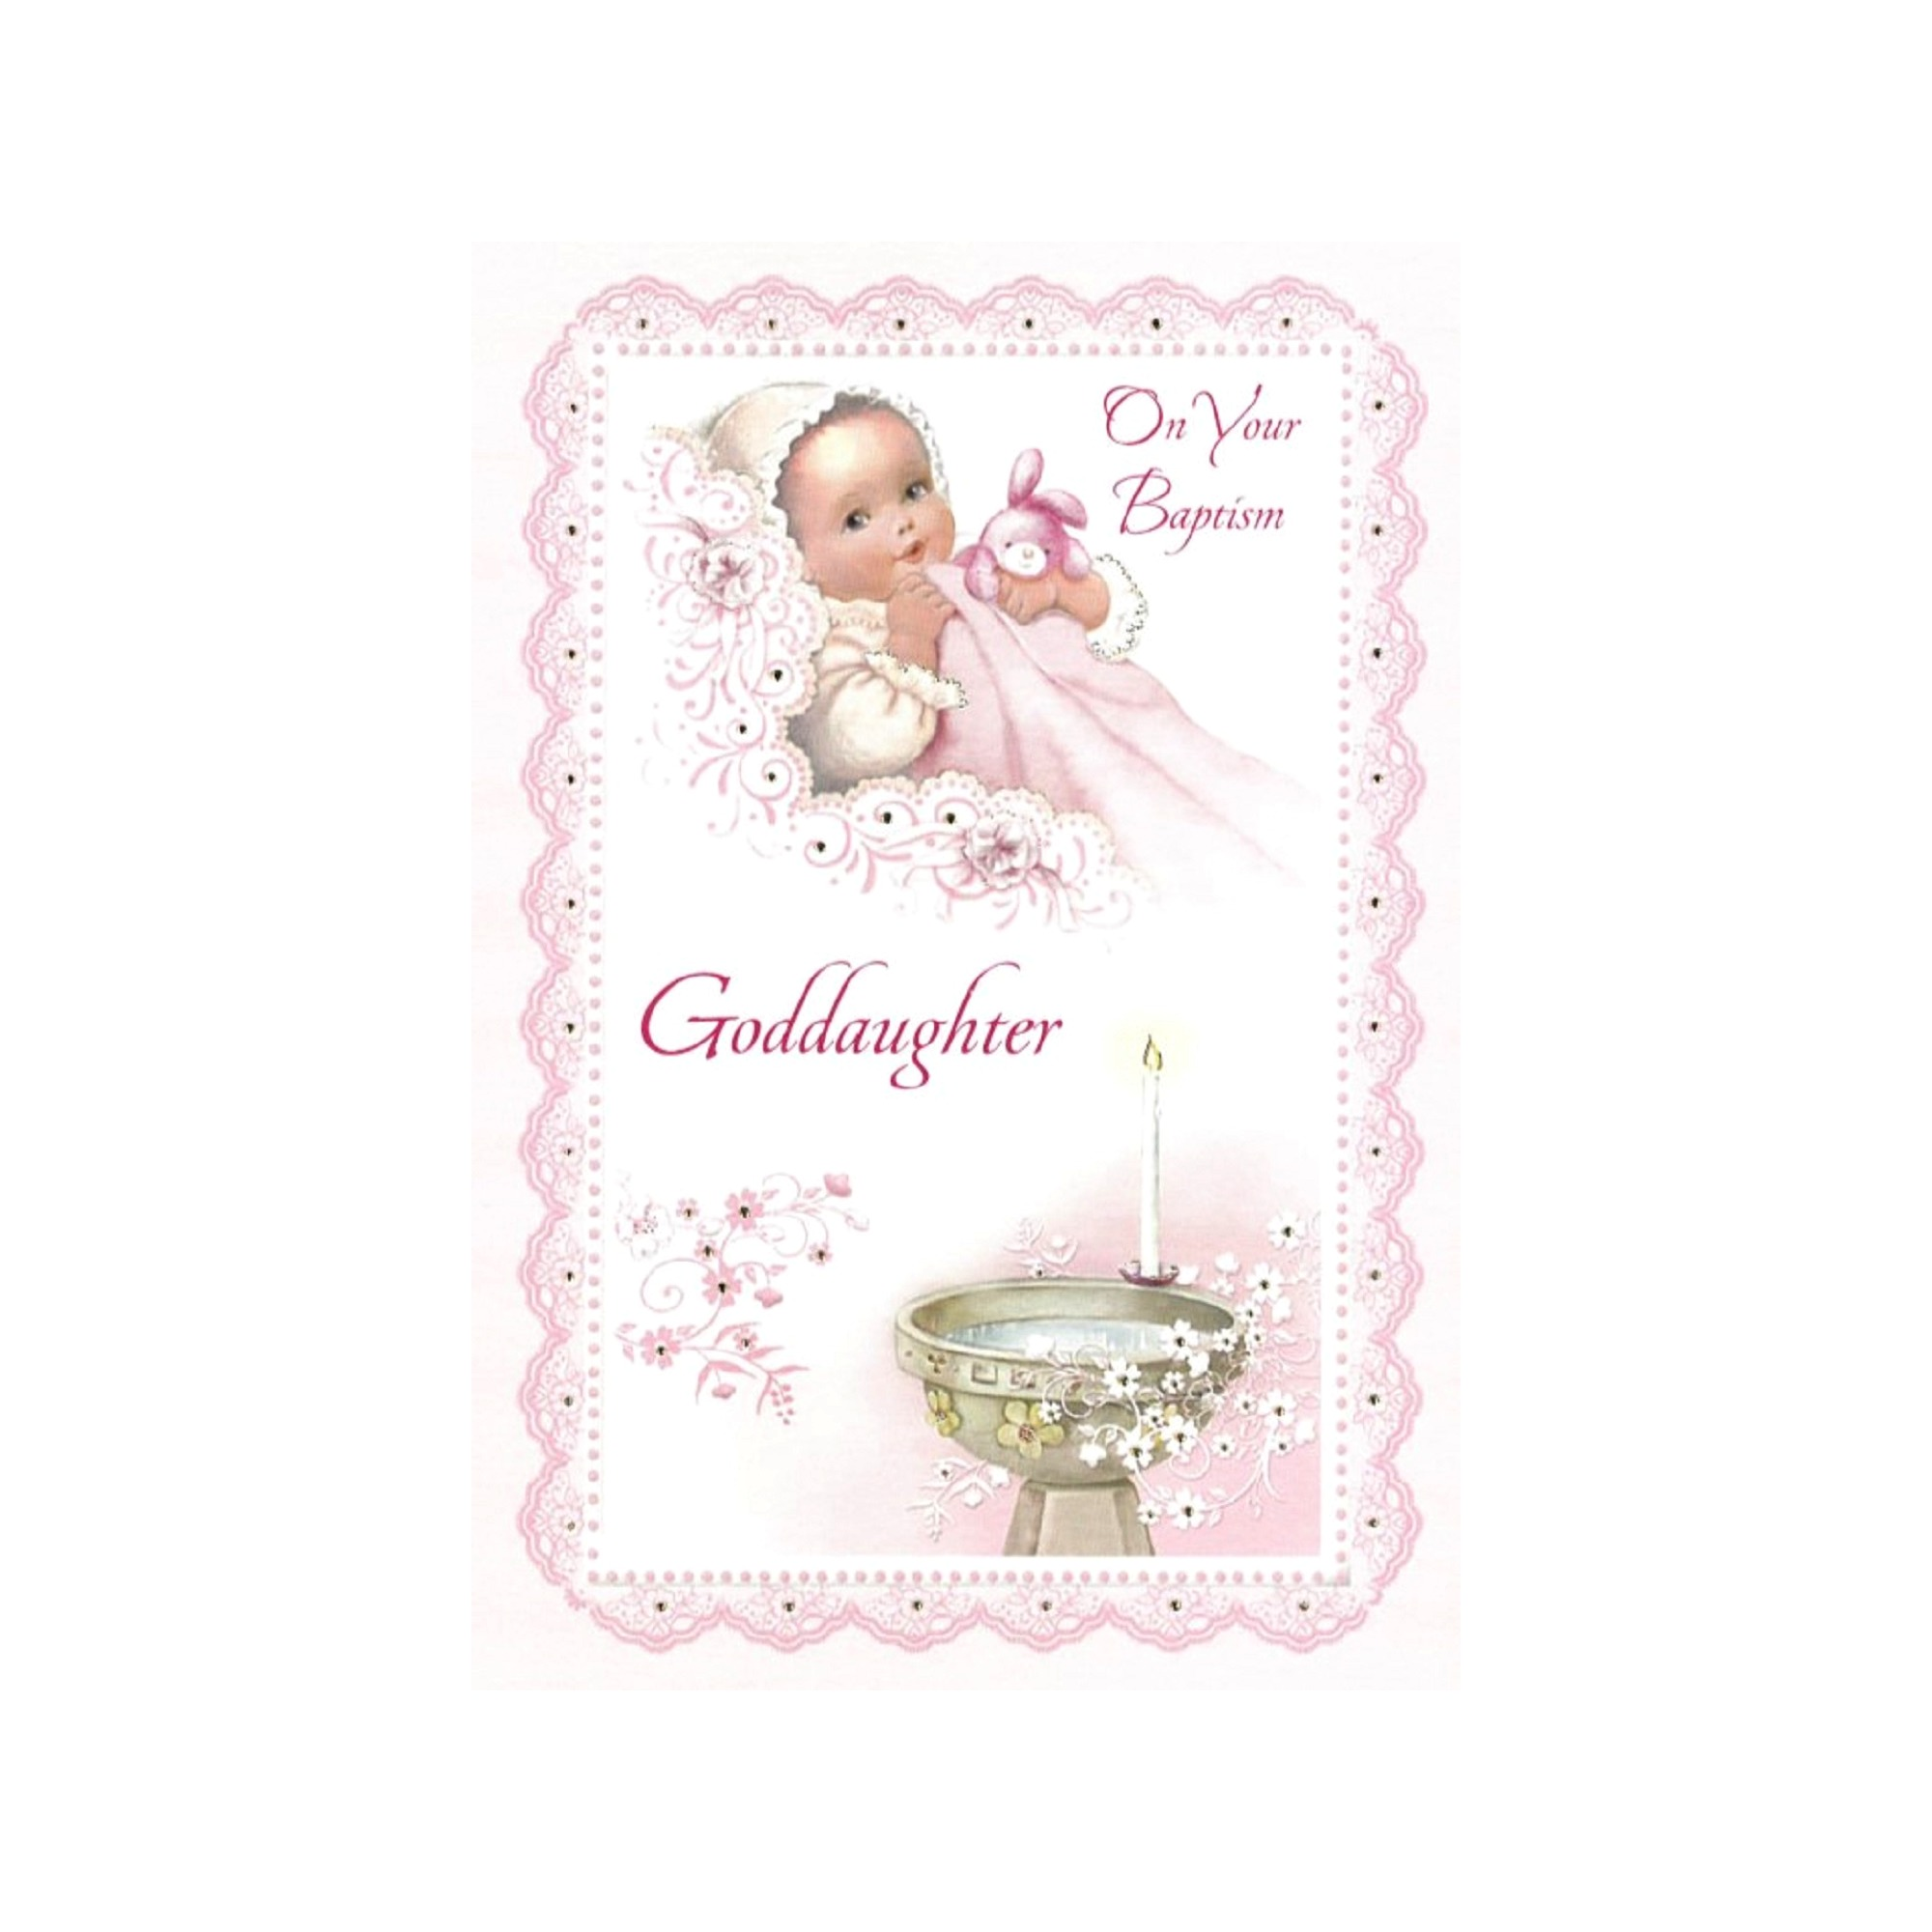 Baptism greeting card goddaughter the catholic company baptism greeting card goddaughter kristyandbryce Image collections